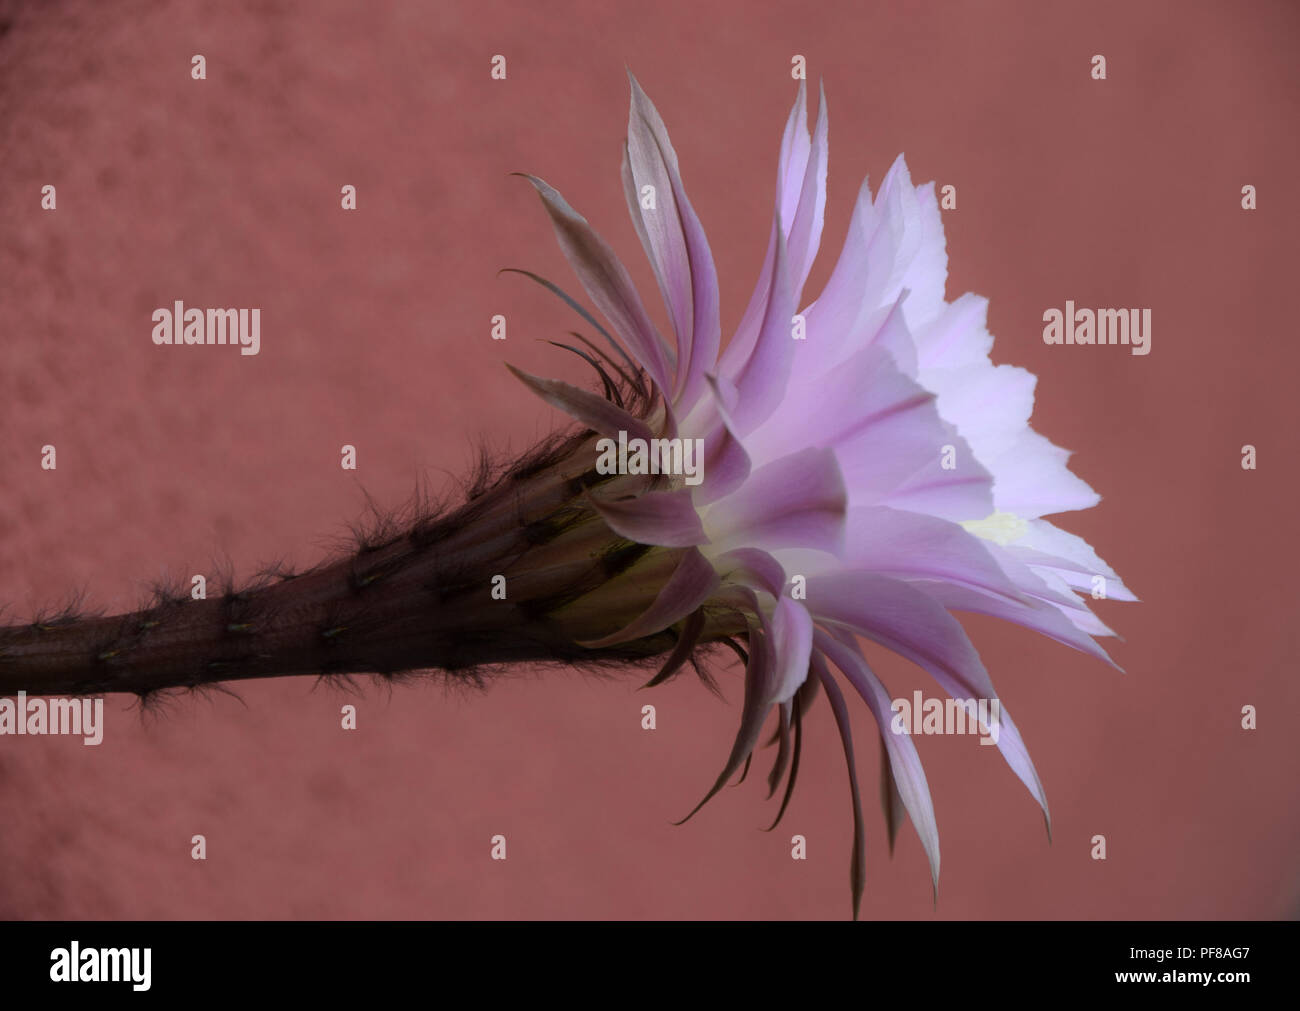 Echinopsis spachiana during flowering also called queen of the night flowers, side view of echinopsis flower in front of terra-cotta color background - Stock Image